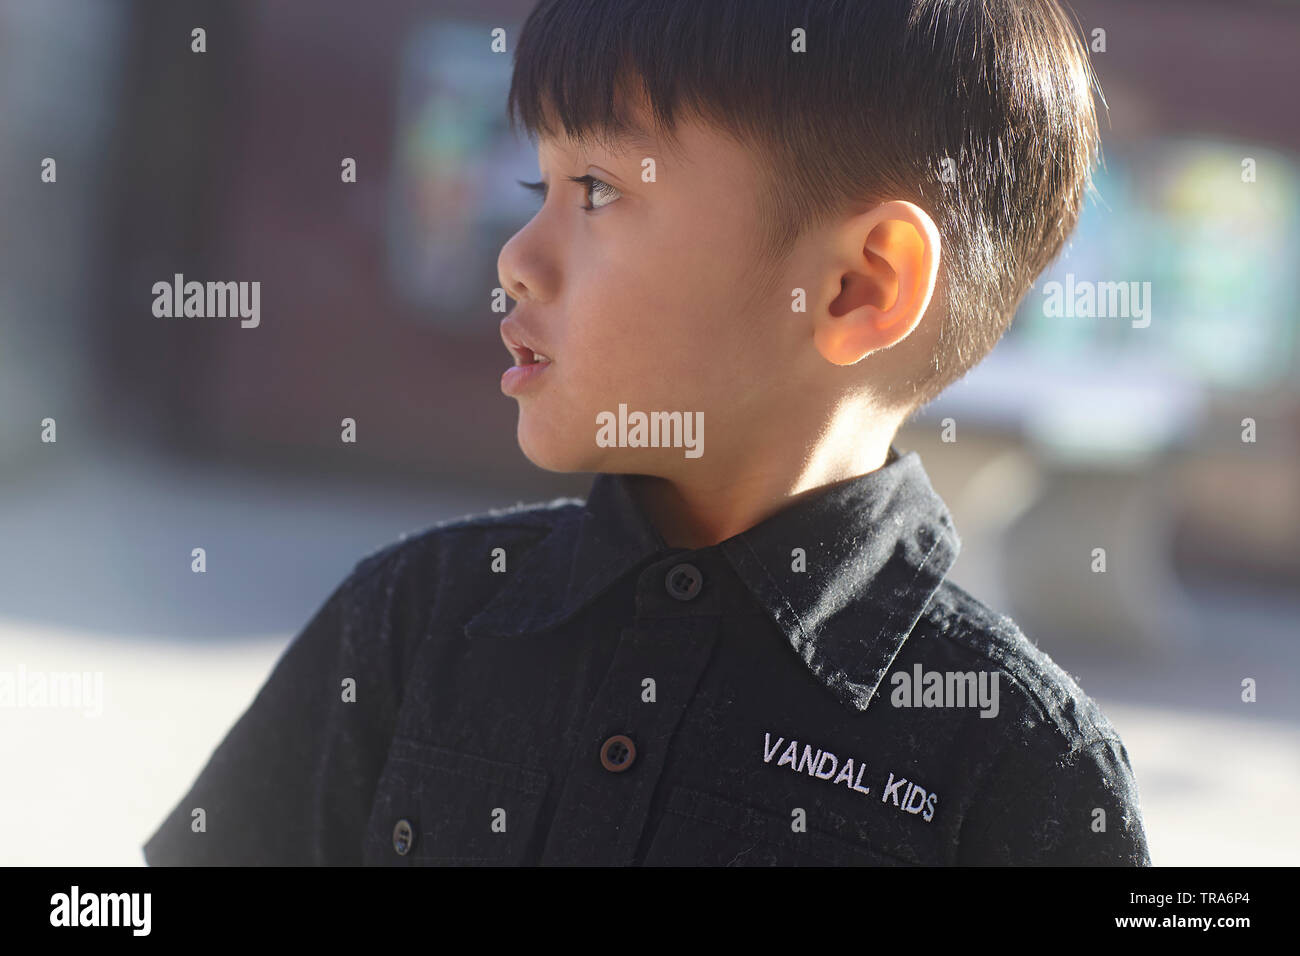 Adorable Asian boy standing on a fence in winter sunshine enjoying the playground - Stock Image